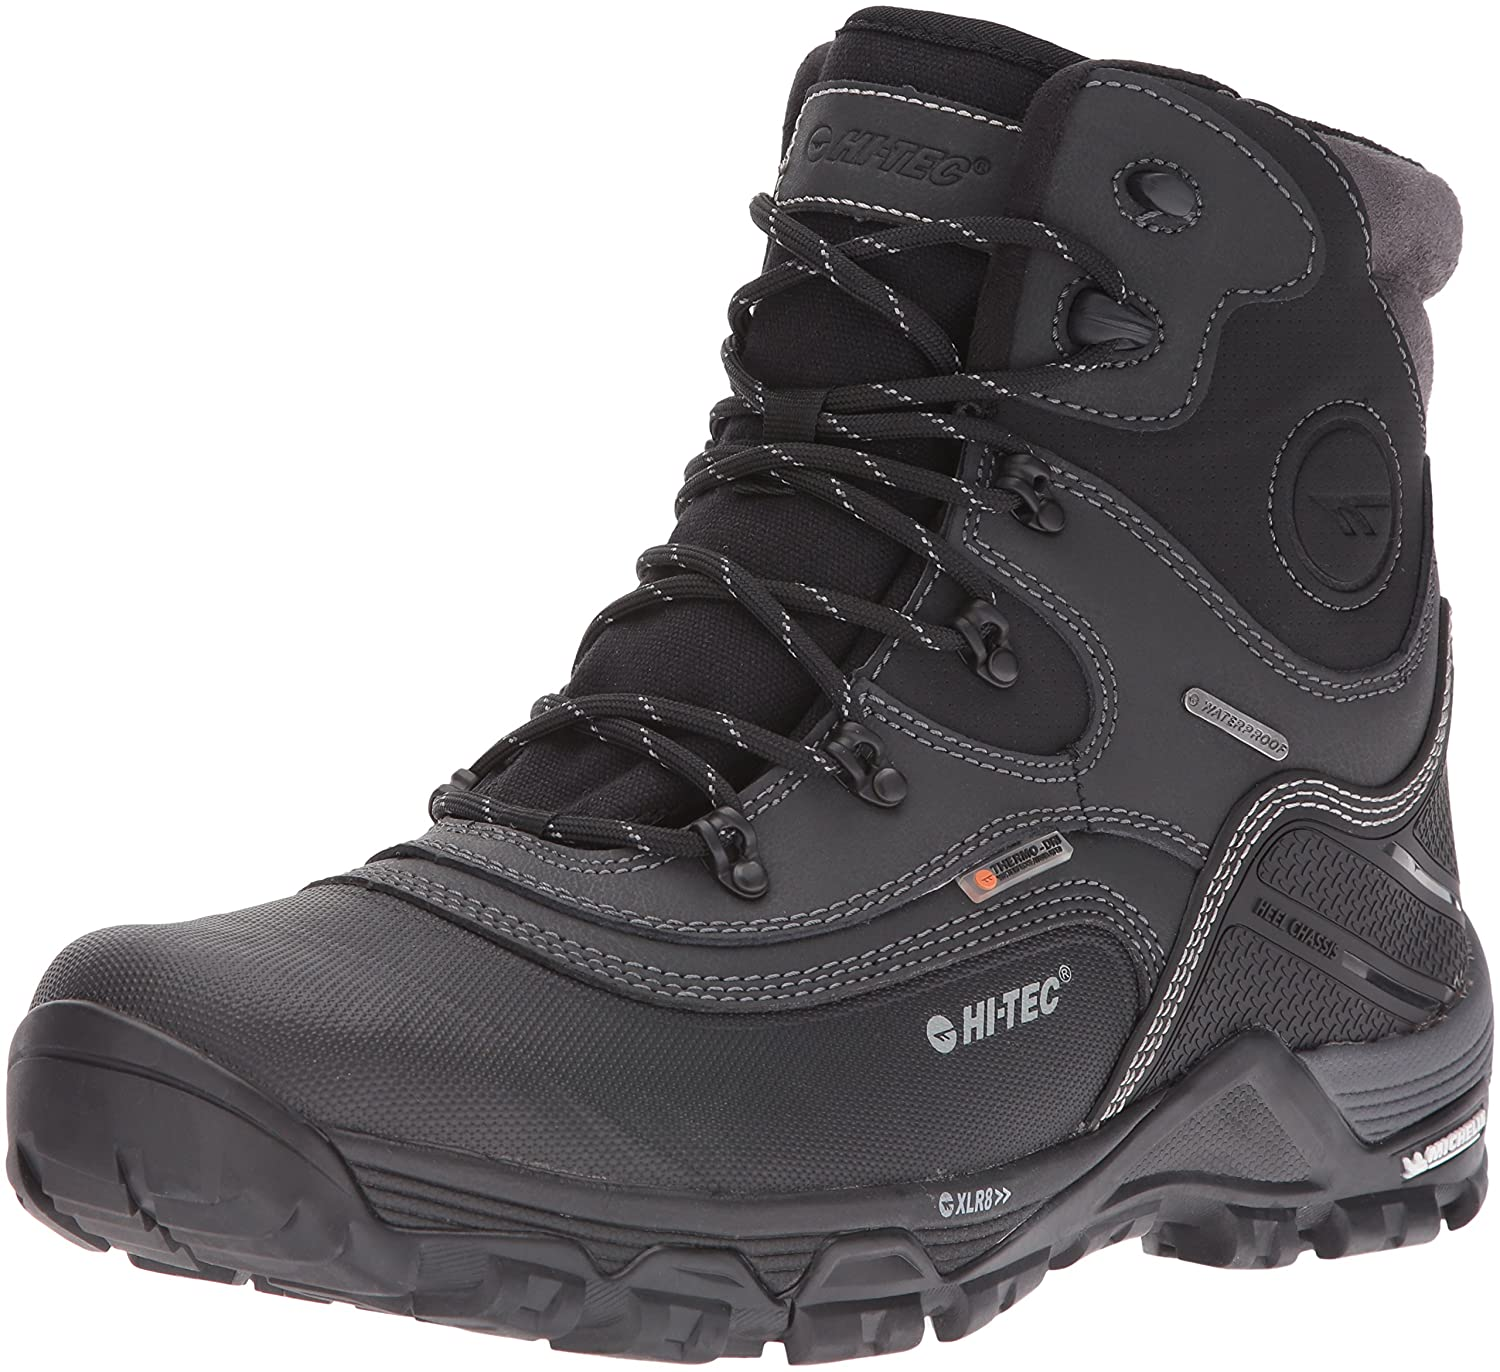 Hi-Tec Men's Trail Ox Winter 200g Waterproof-M Snow Boot Hi-Tec Sports USA Inc